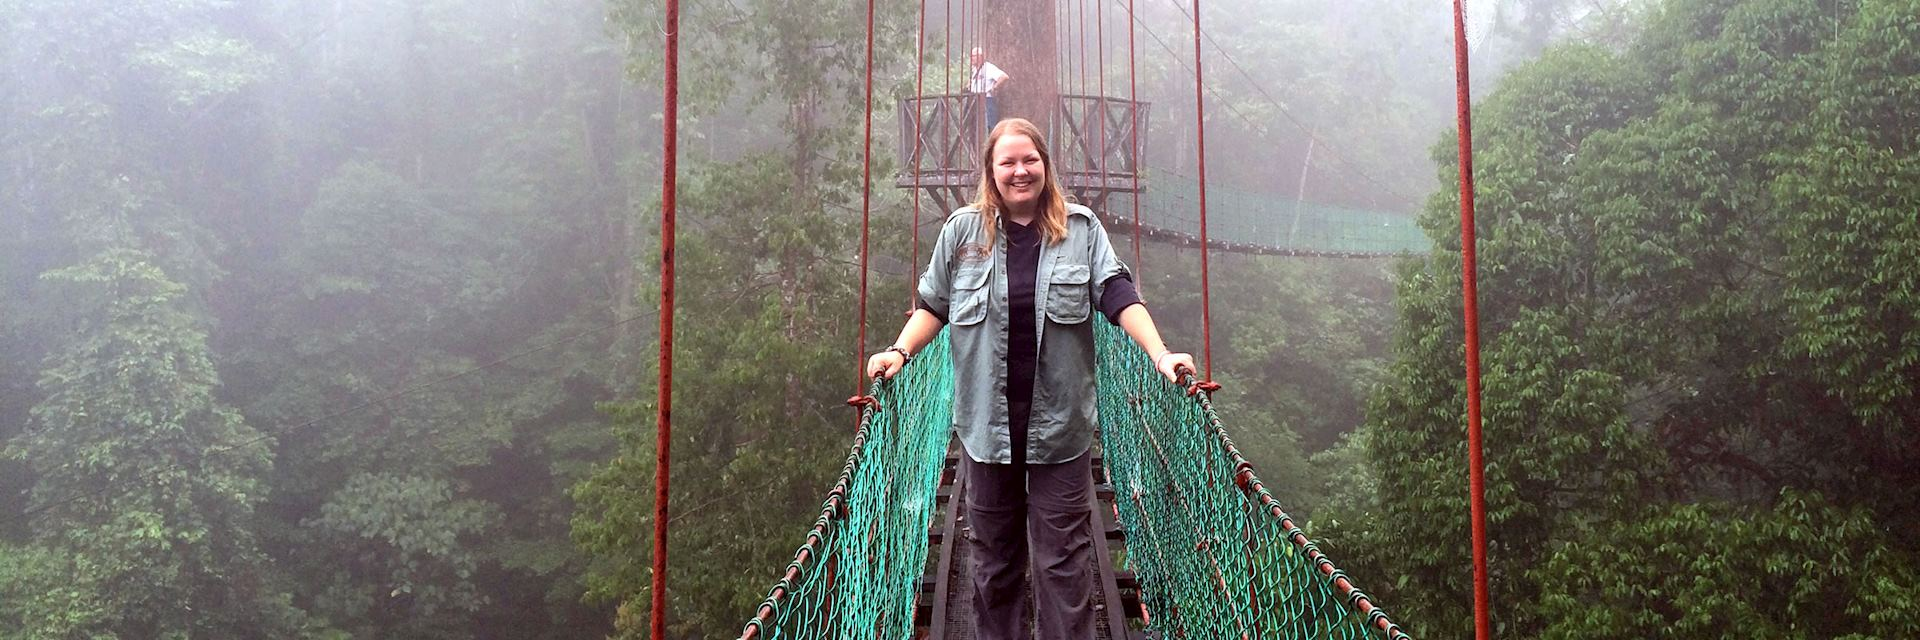 Sophie on a canopy walkway at Borneo Rainforest Lodge, Danum Valley, Borneo